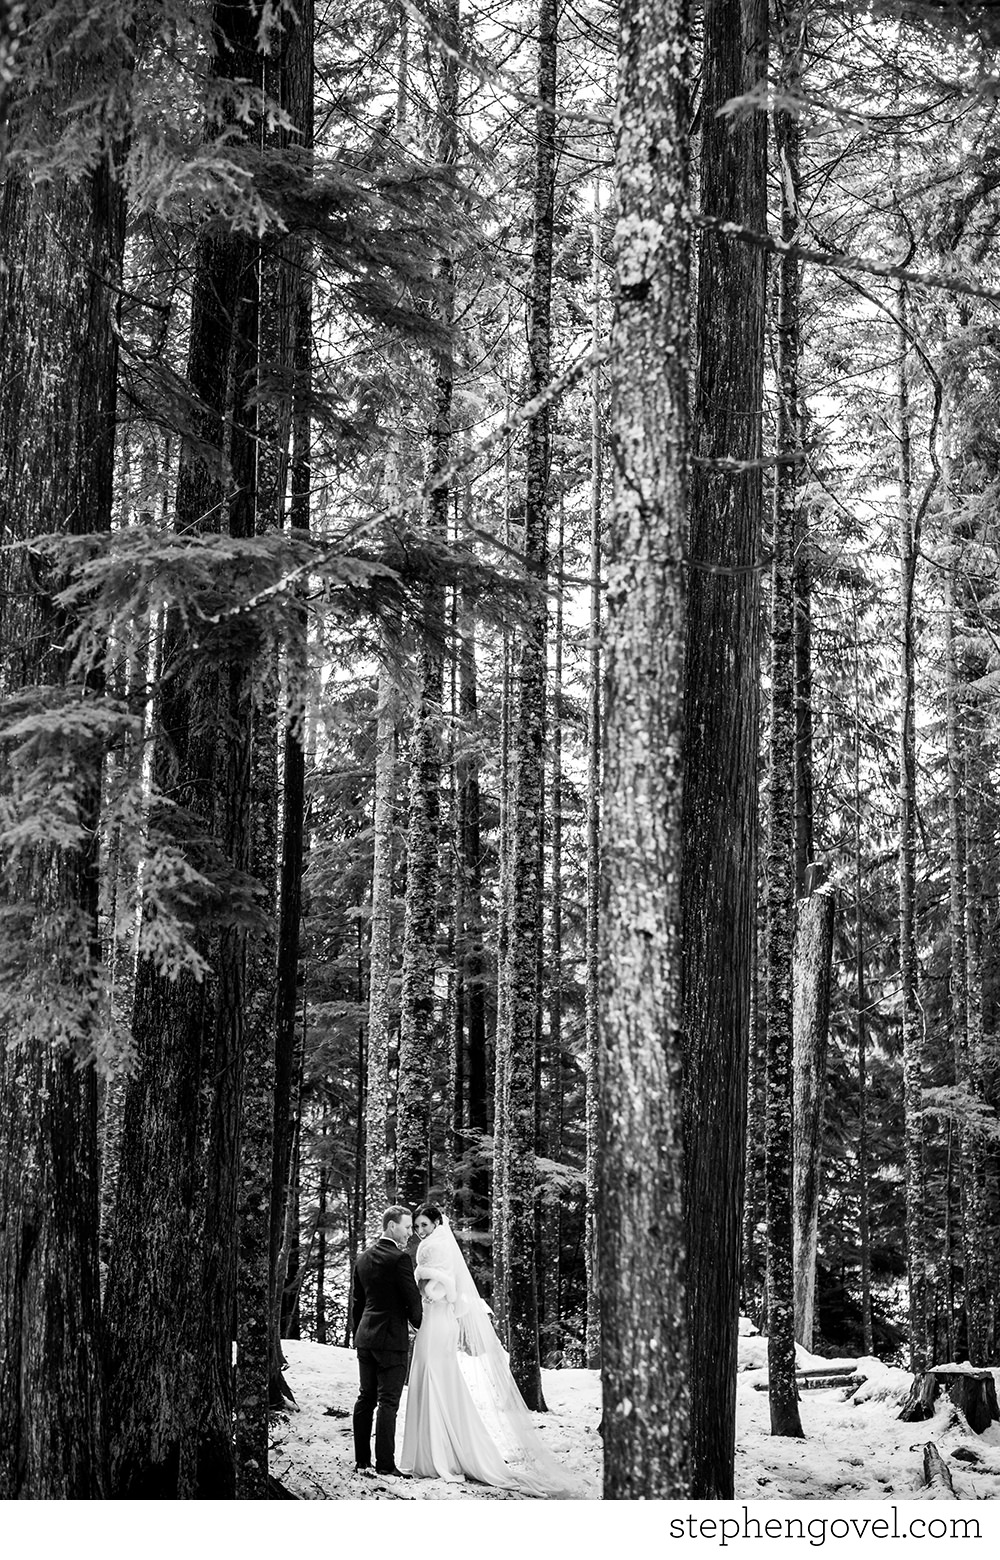 whistlerwinterwedding16.jpg